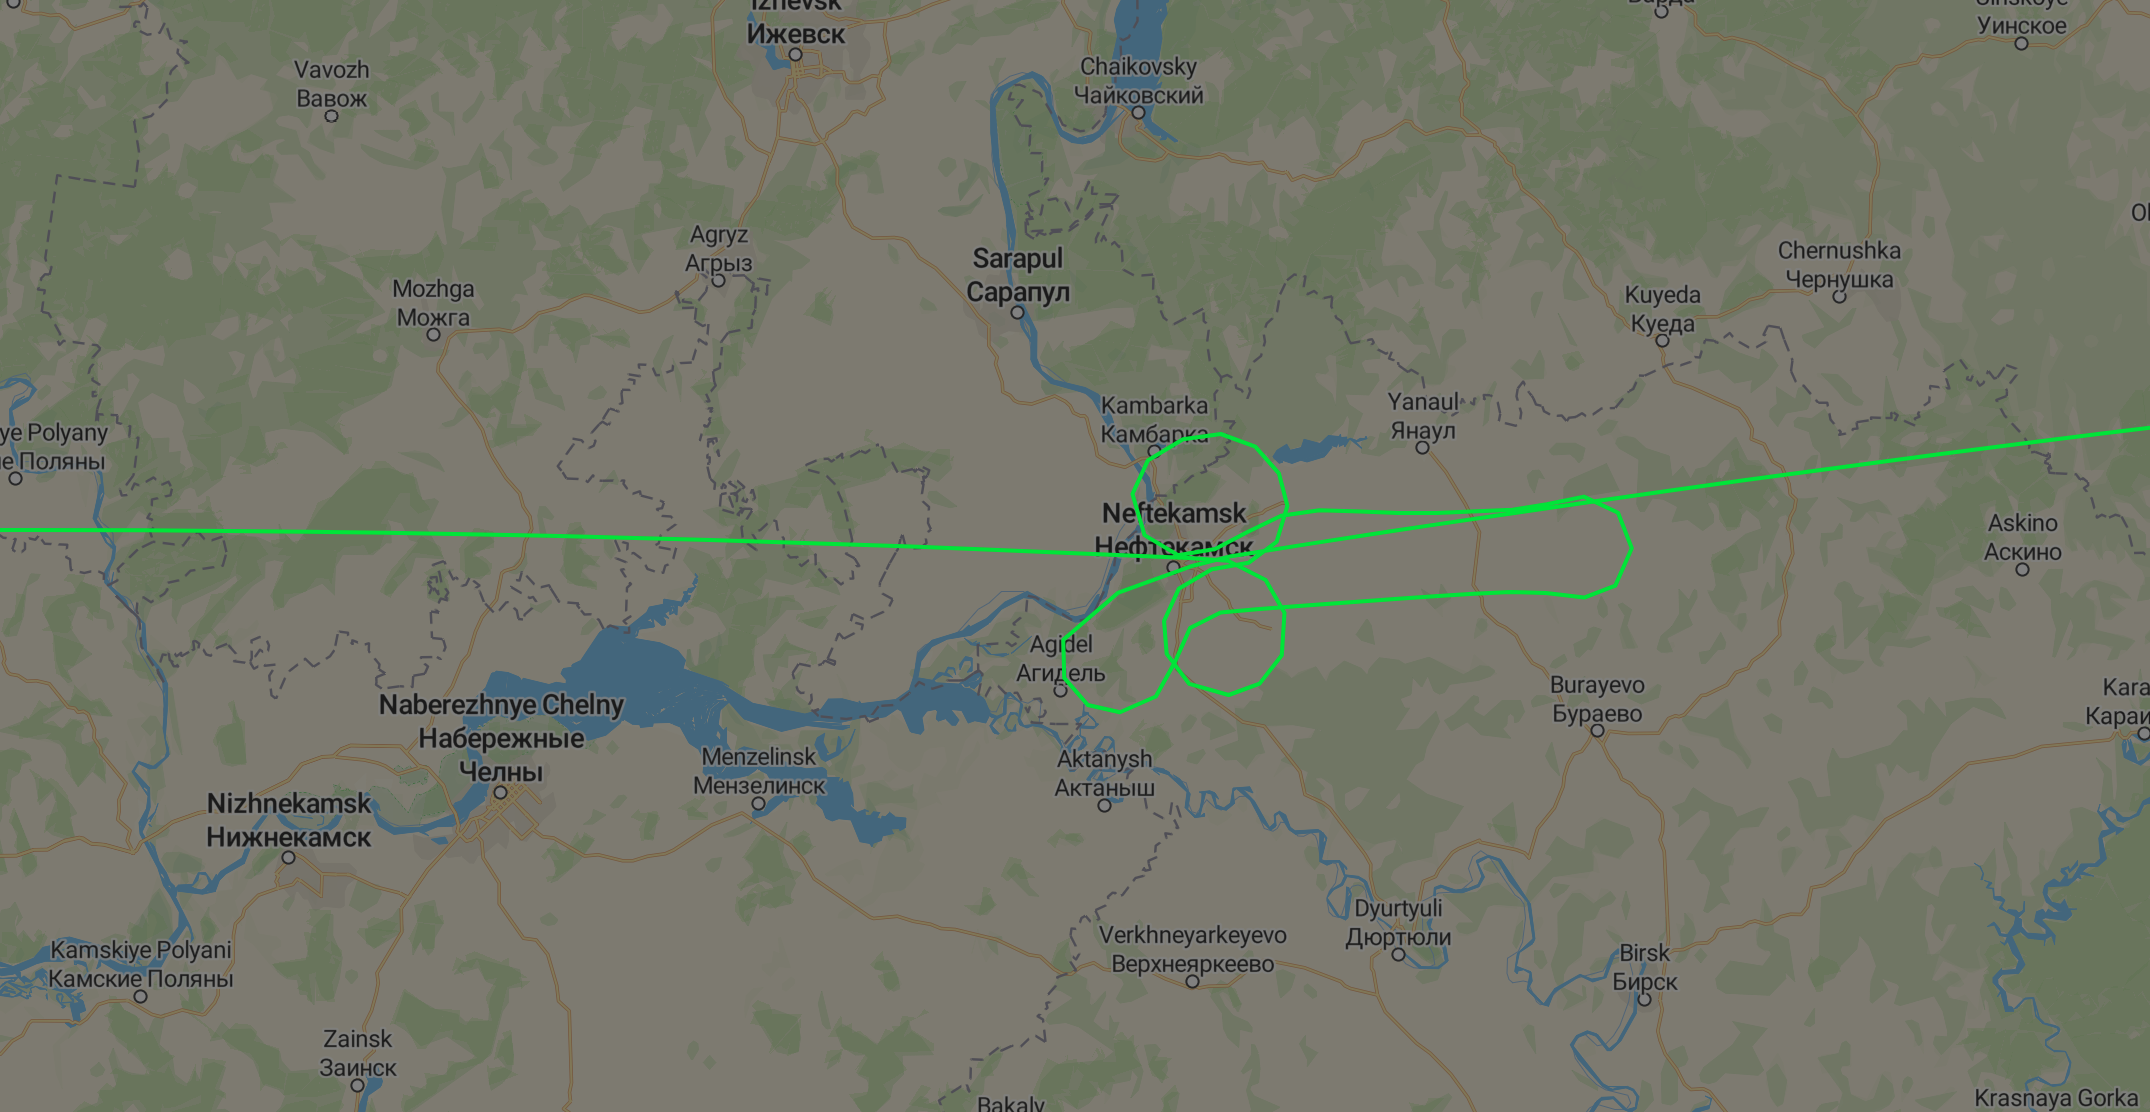 Russian flight traces penis-shaped pattern in the sky